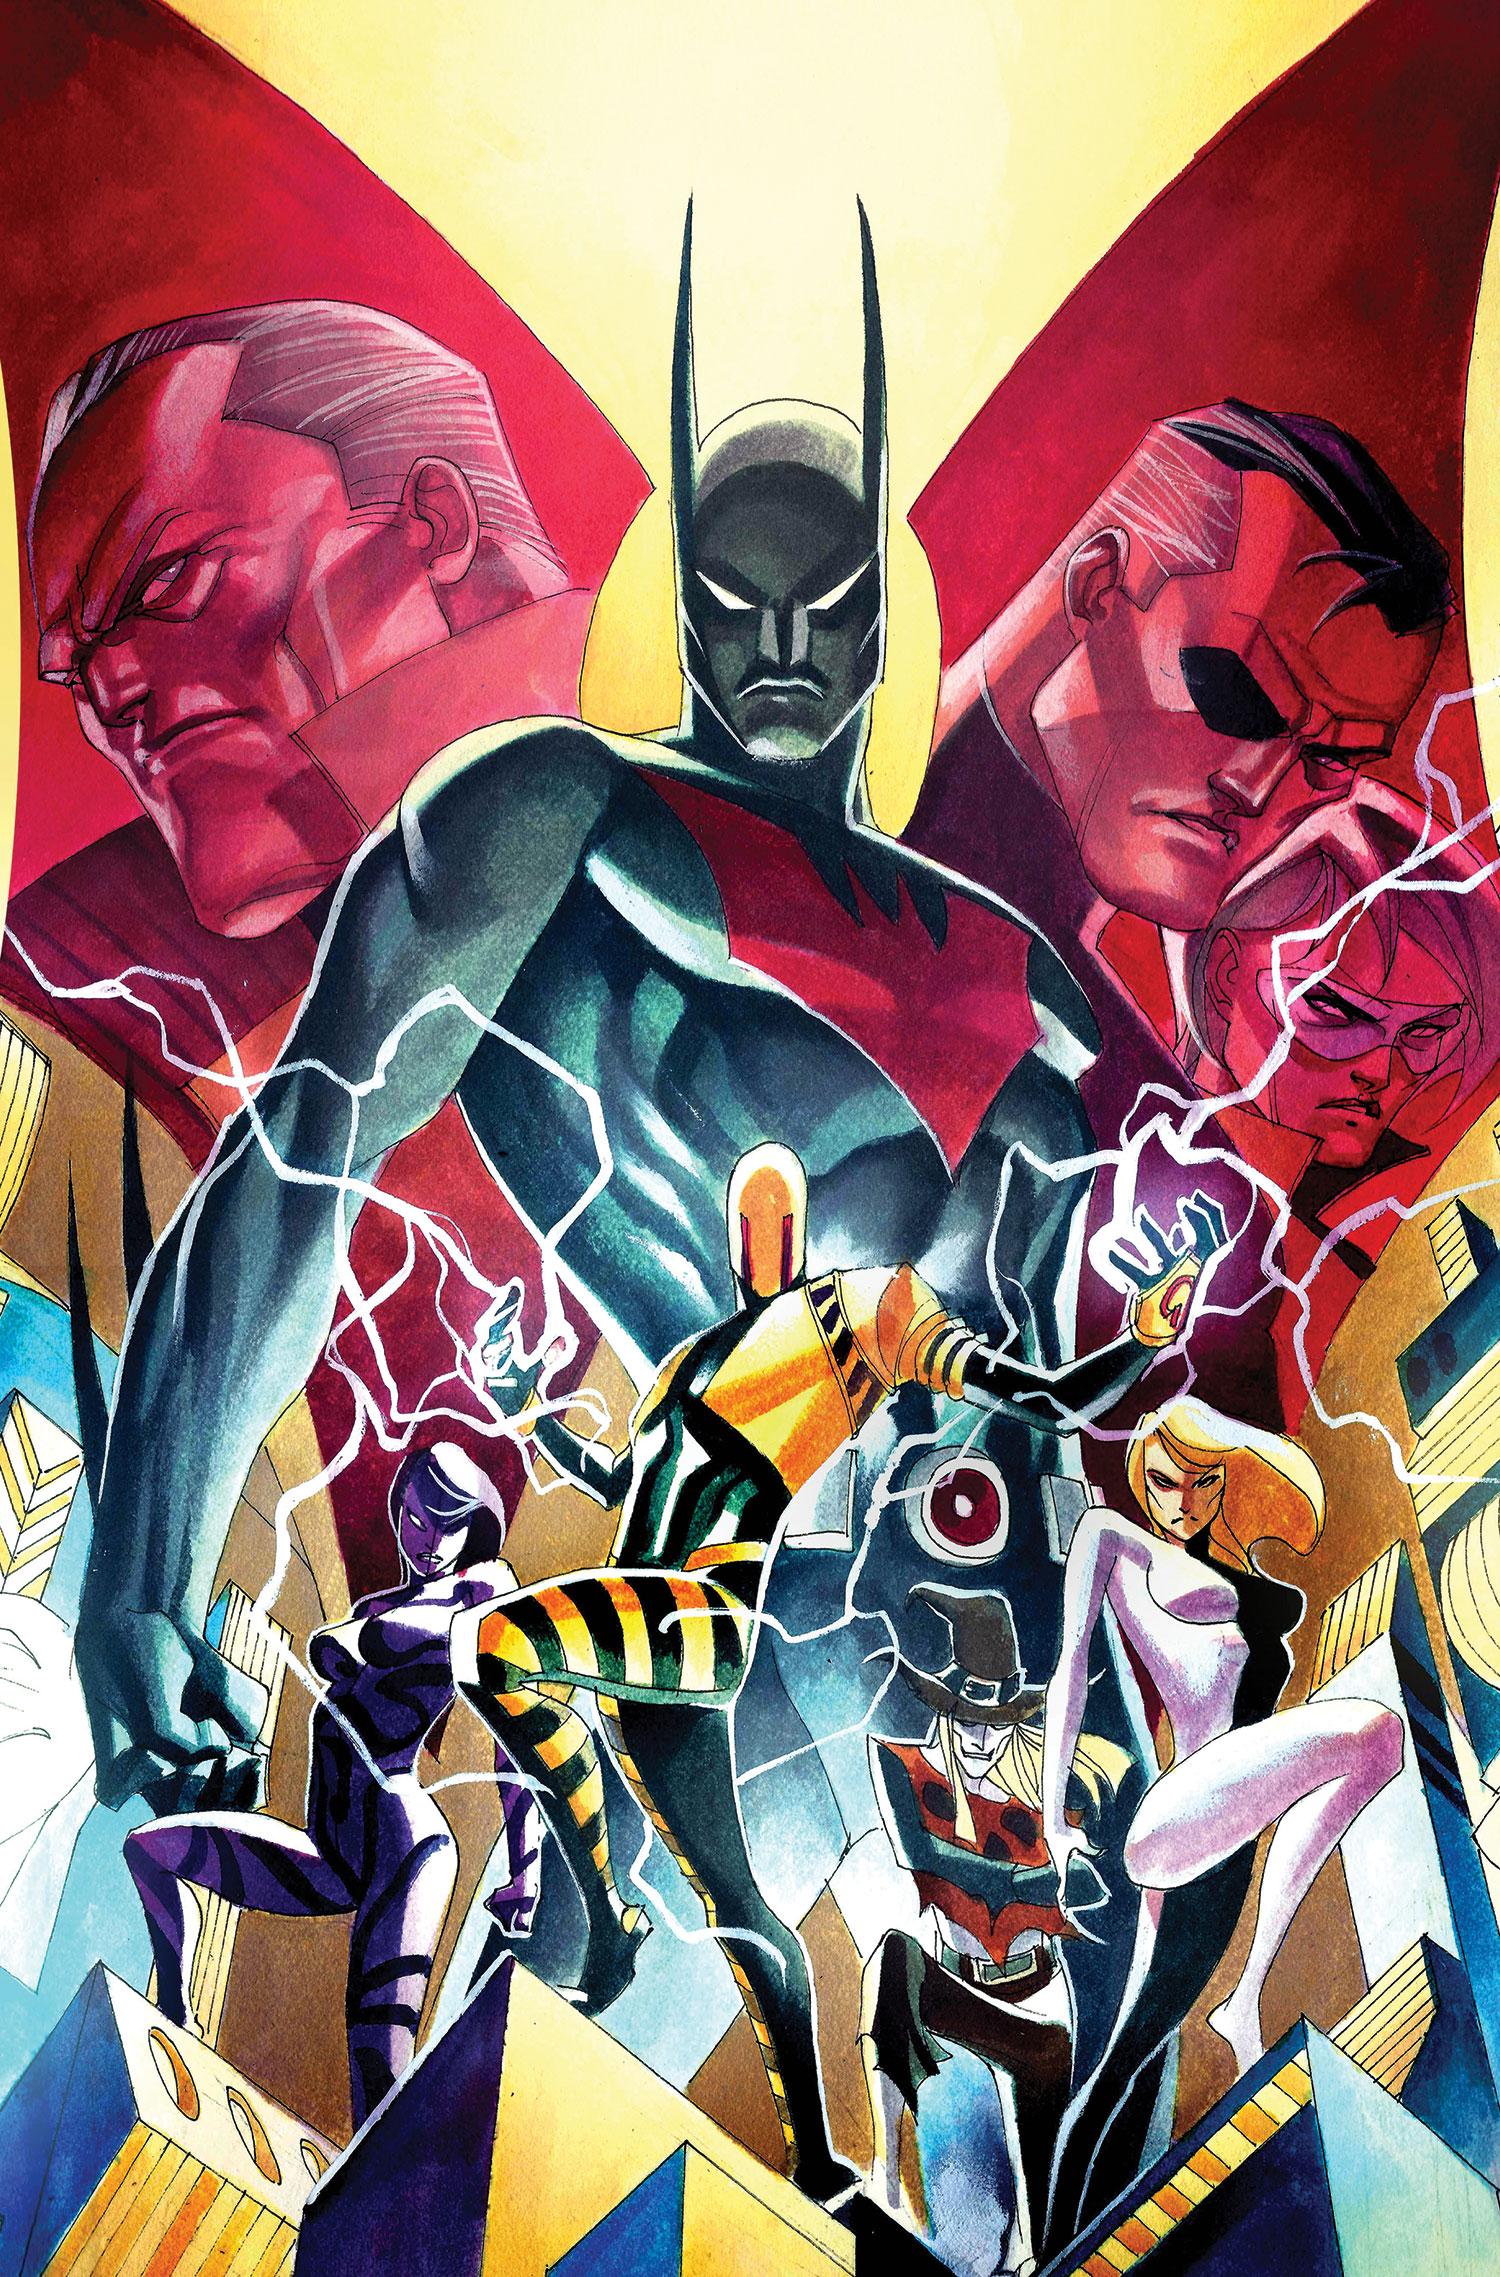 Dc comics universe batman beyond spoilers here comes robin beyond is this the beginning or a quick end